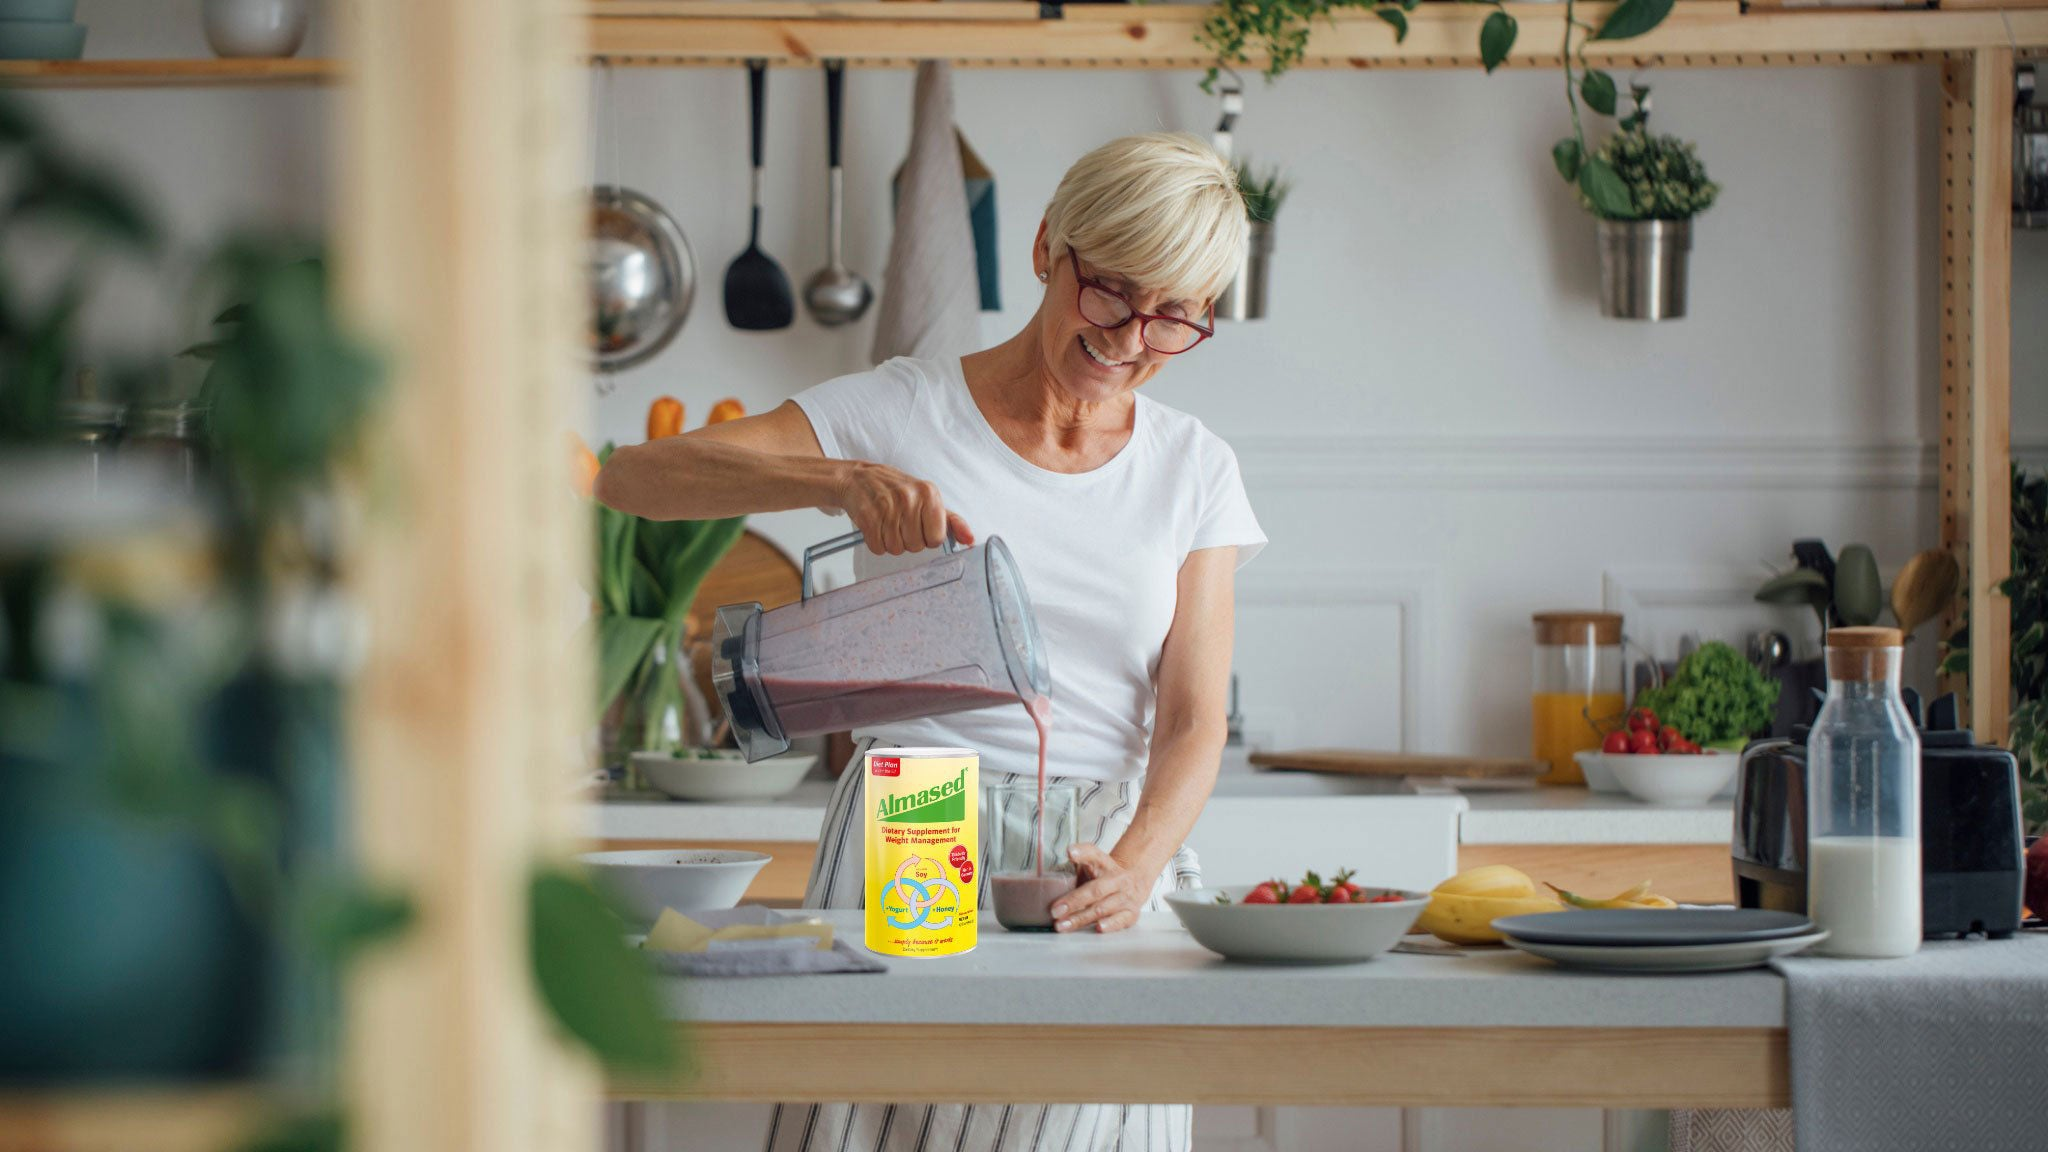 woman in the kitchen preparing an lmased smoothie for weight control